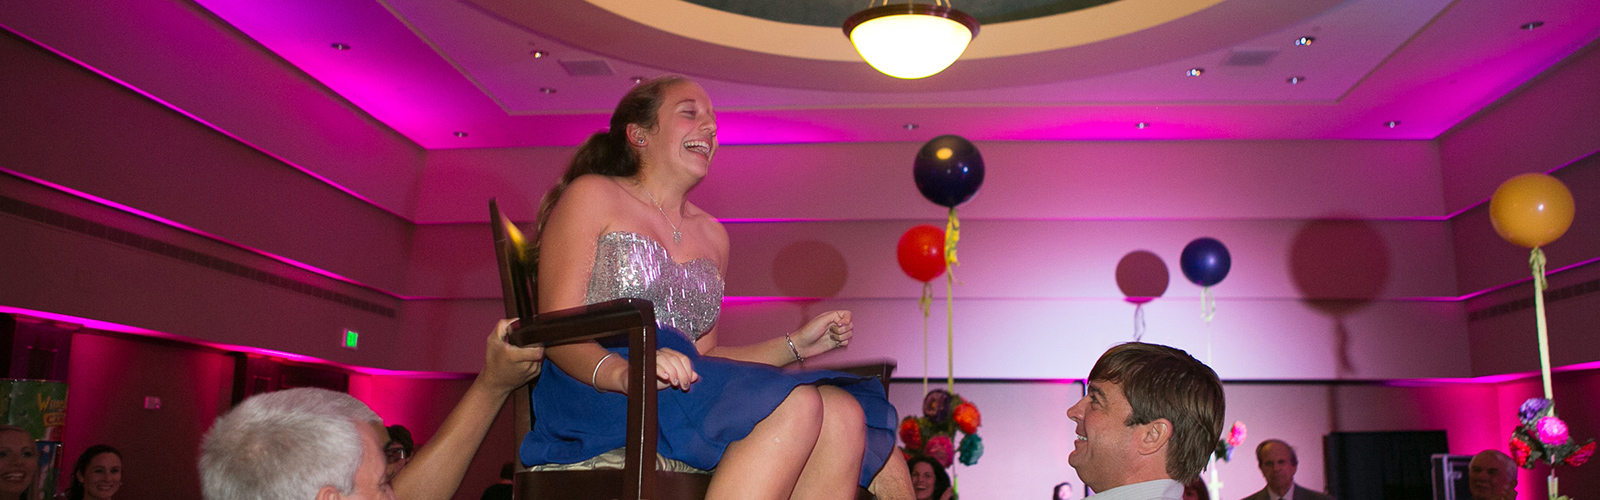 "<h1>Mitzvahs</h1><p>""There was never a dull moment and that truly is why the party was so much fun. The kids and adults alike had a ball!""<strong>  Teri Aizenman - Mitzvah, Embassy Suites, Birmingham, Alabama</strong></p>"